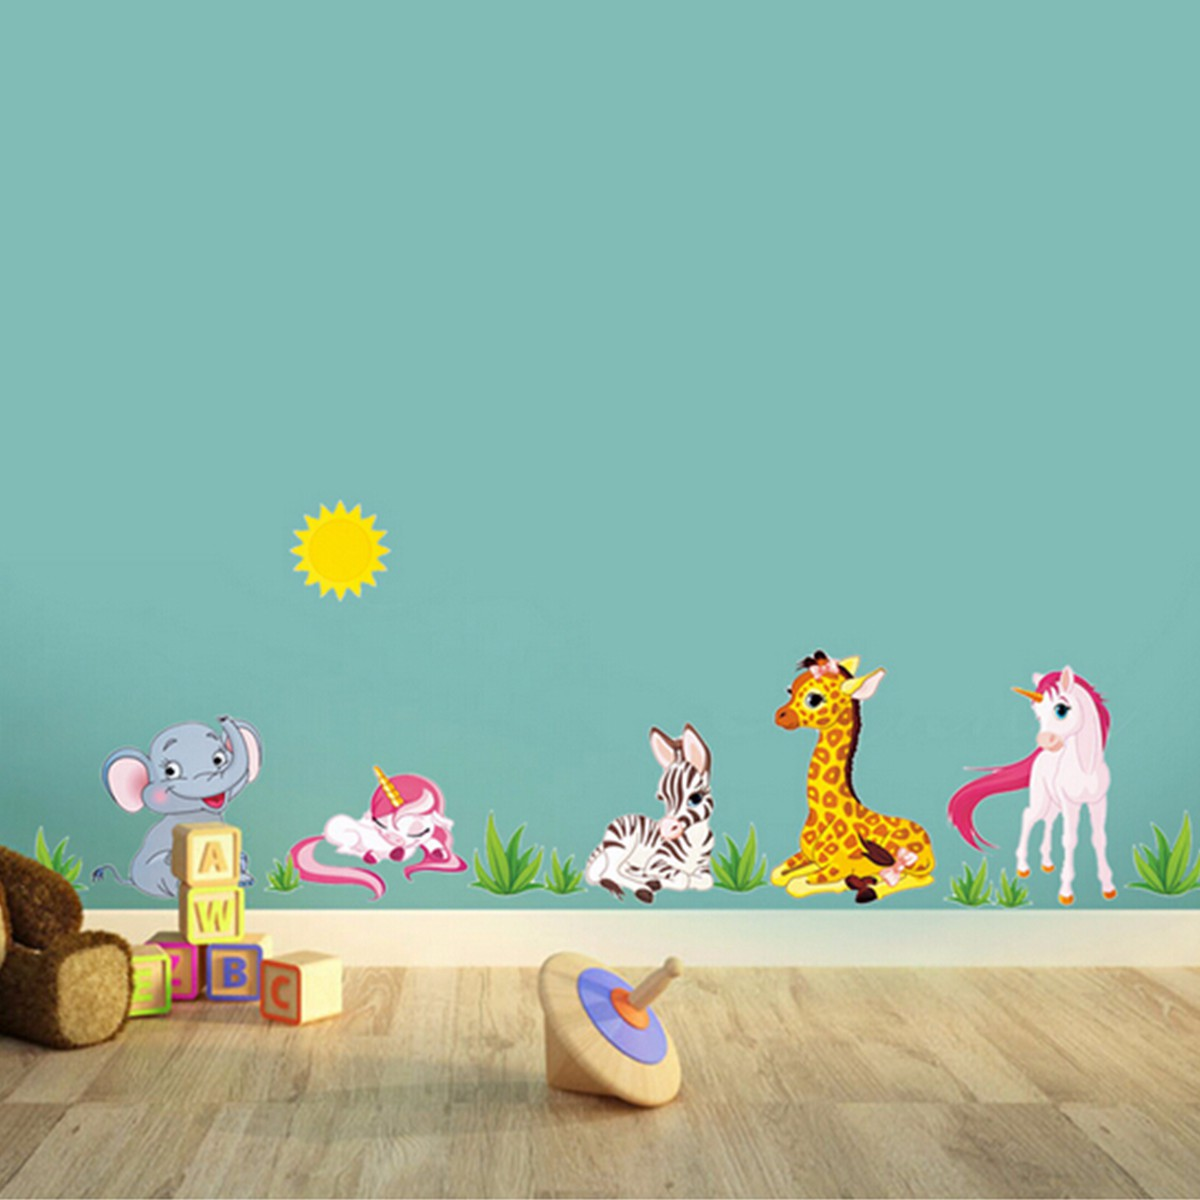 Cartoon Animal Elephant Giraffes Grass Bedroom Removable